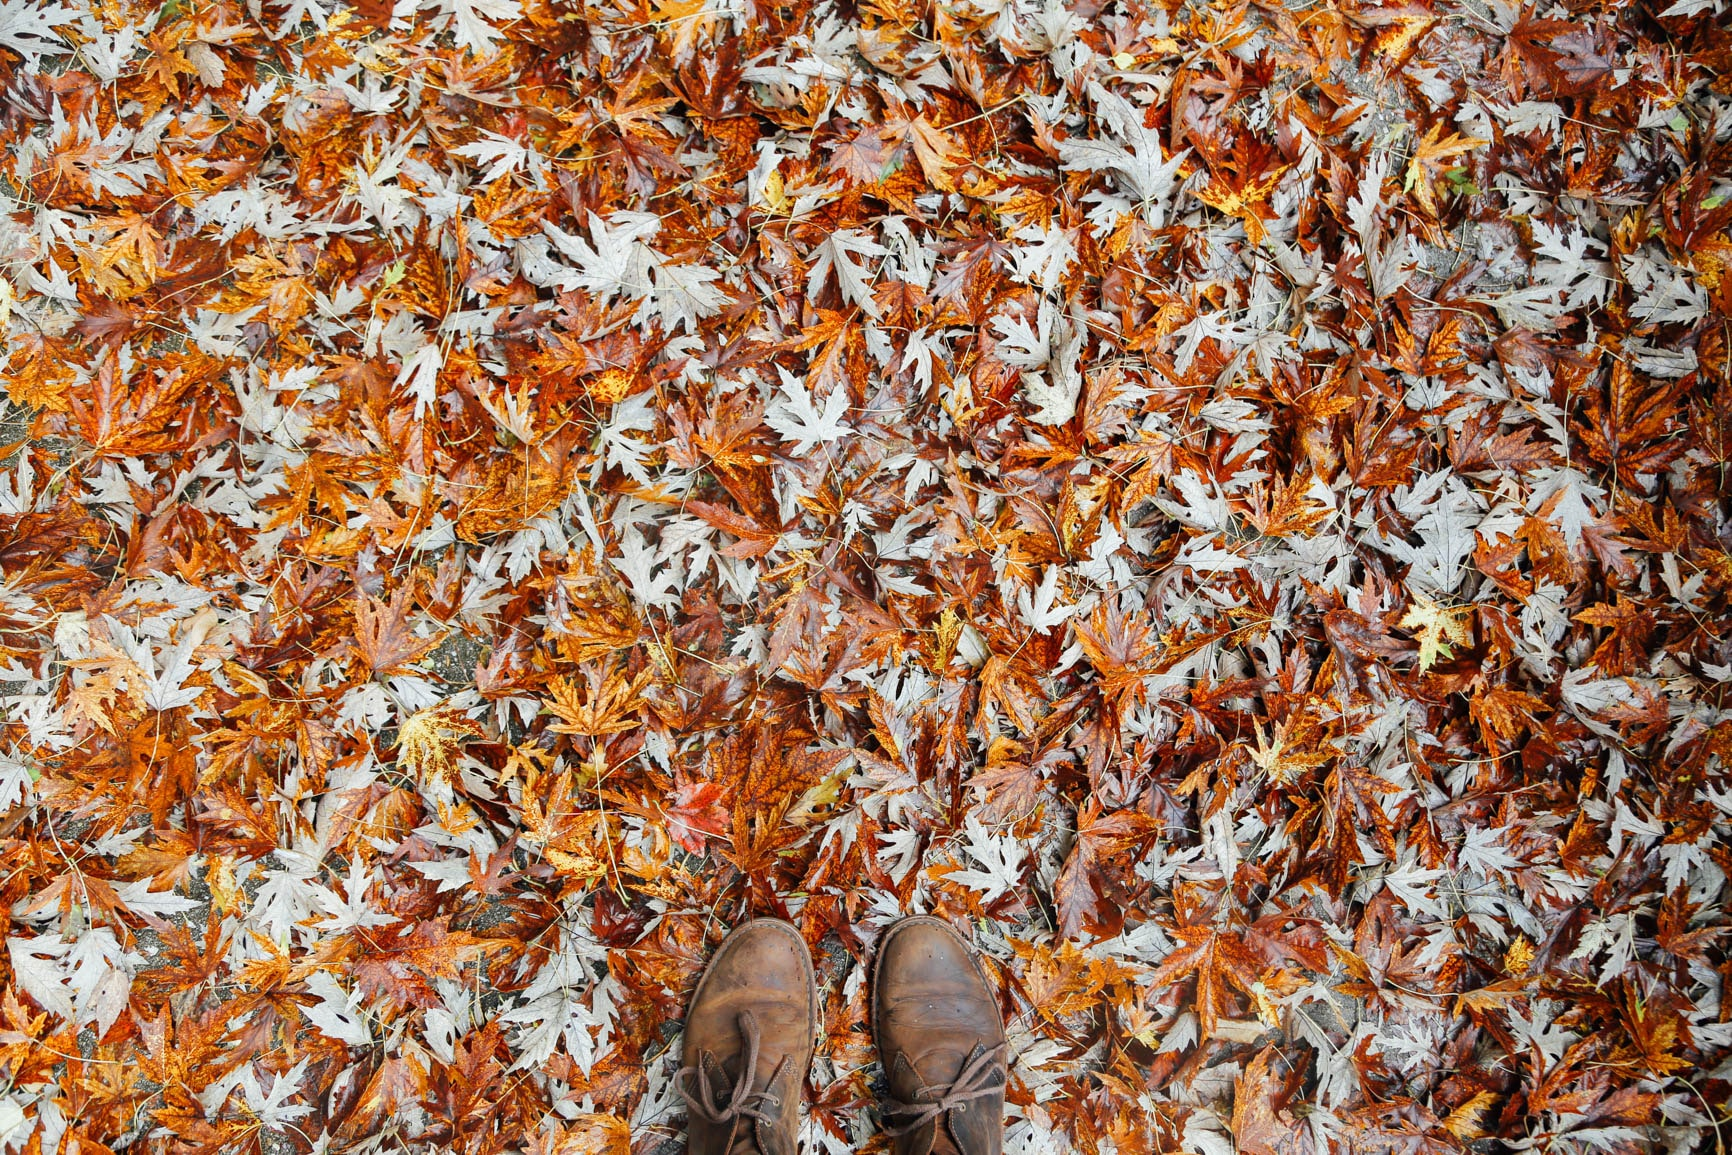 A person wearing boots standing on fallen orange leaves in autumn